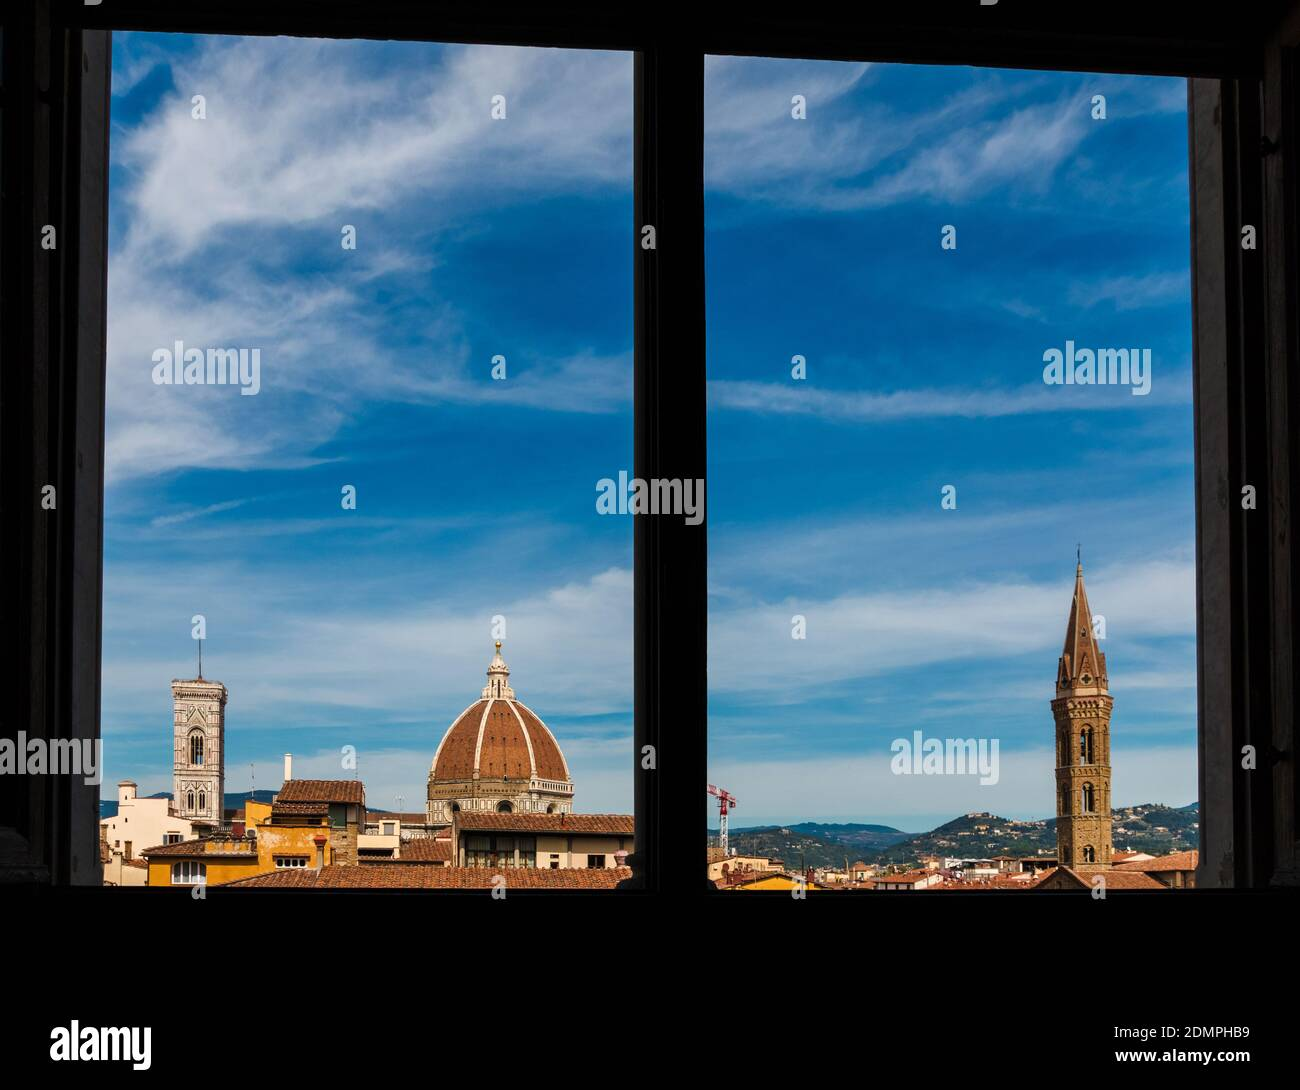 Beautiful panoramic rooftop view of Giotto's Campanile, the Florence Cathedral's dome with cupola and the bell tower of the Badia Fiorentina church,... Stock Photo